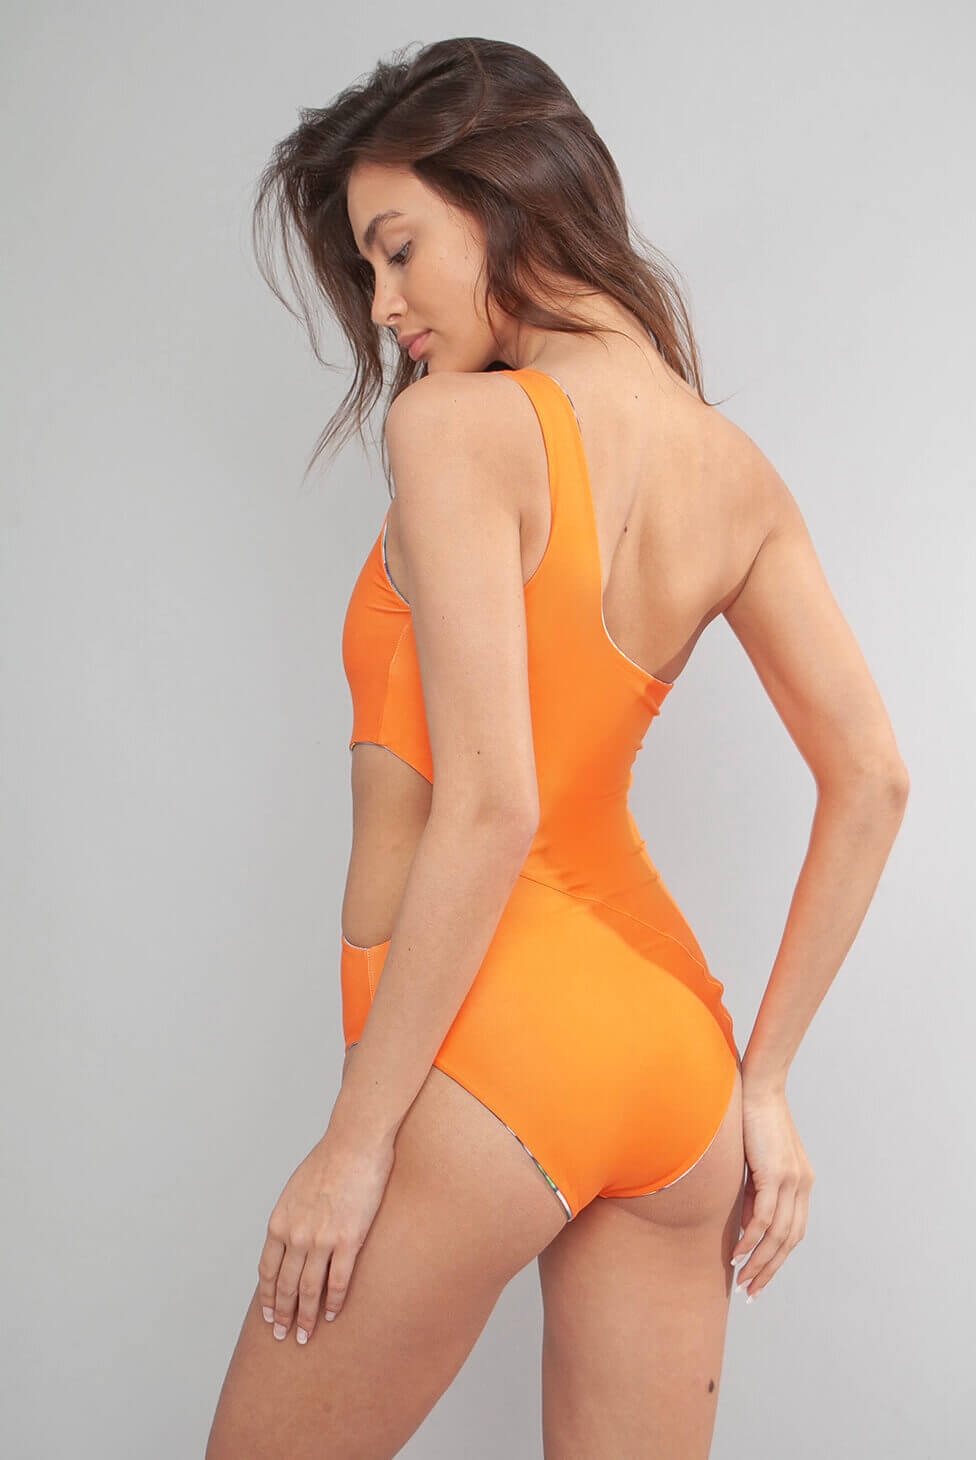 Wolven Flora One Shoulder One Piece Asymmetrical neckline Thick one shoulder strap Mid–coverage bottom Reverses to solid orange Sustainable Swimwear